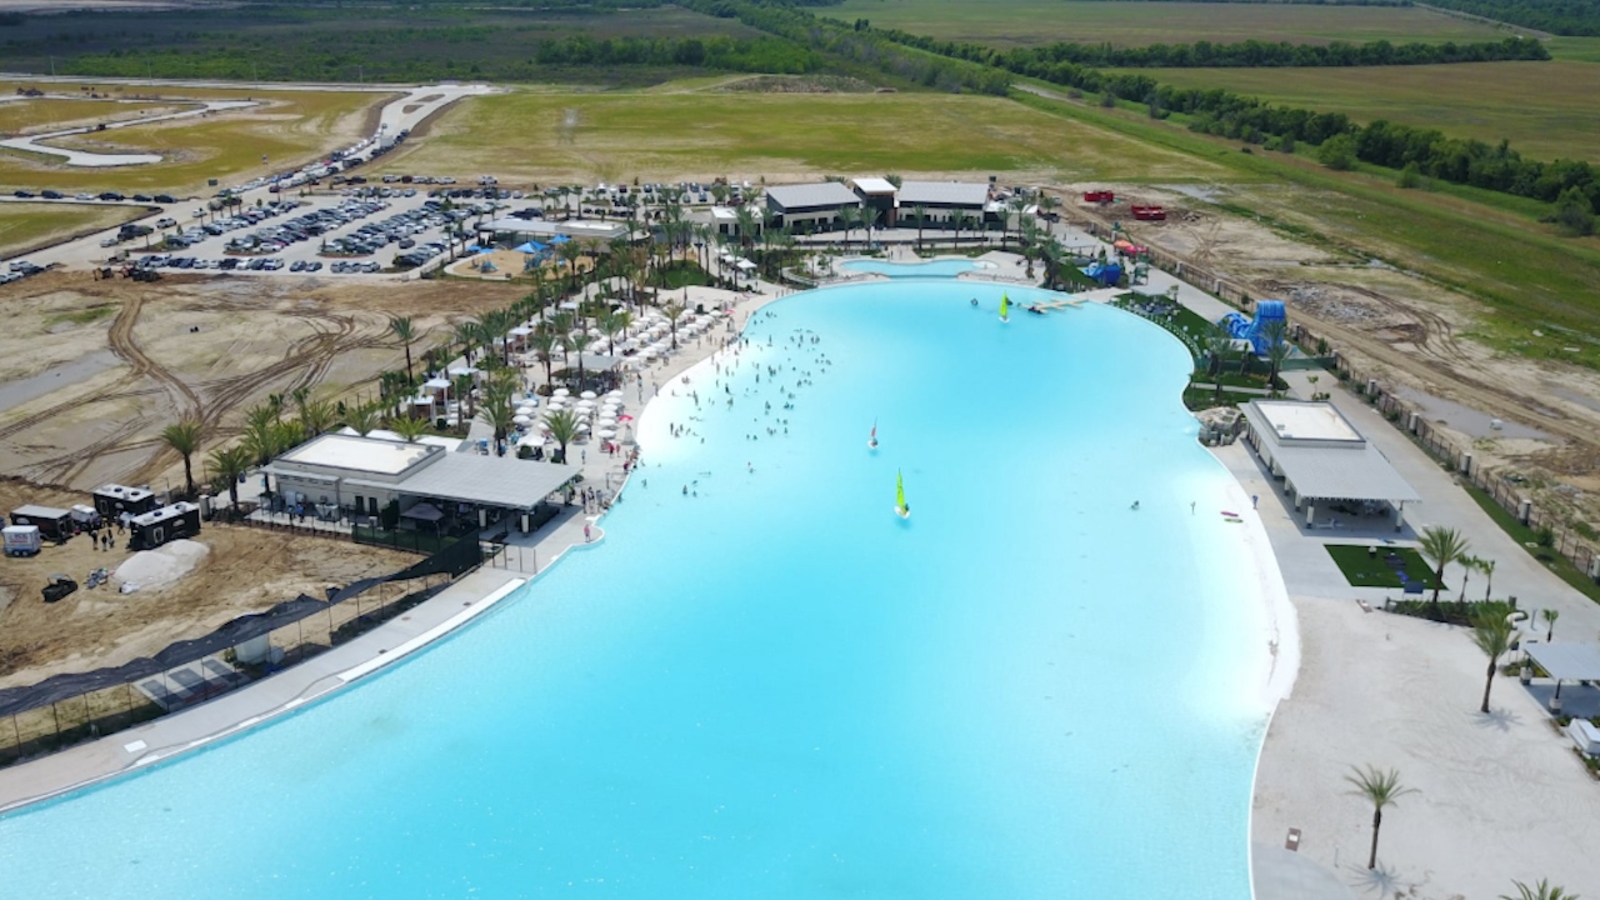 State S Largest Crystal Lagoon Opens In Texas City Abc13 Houston